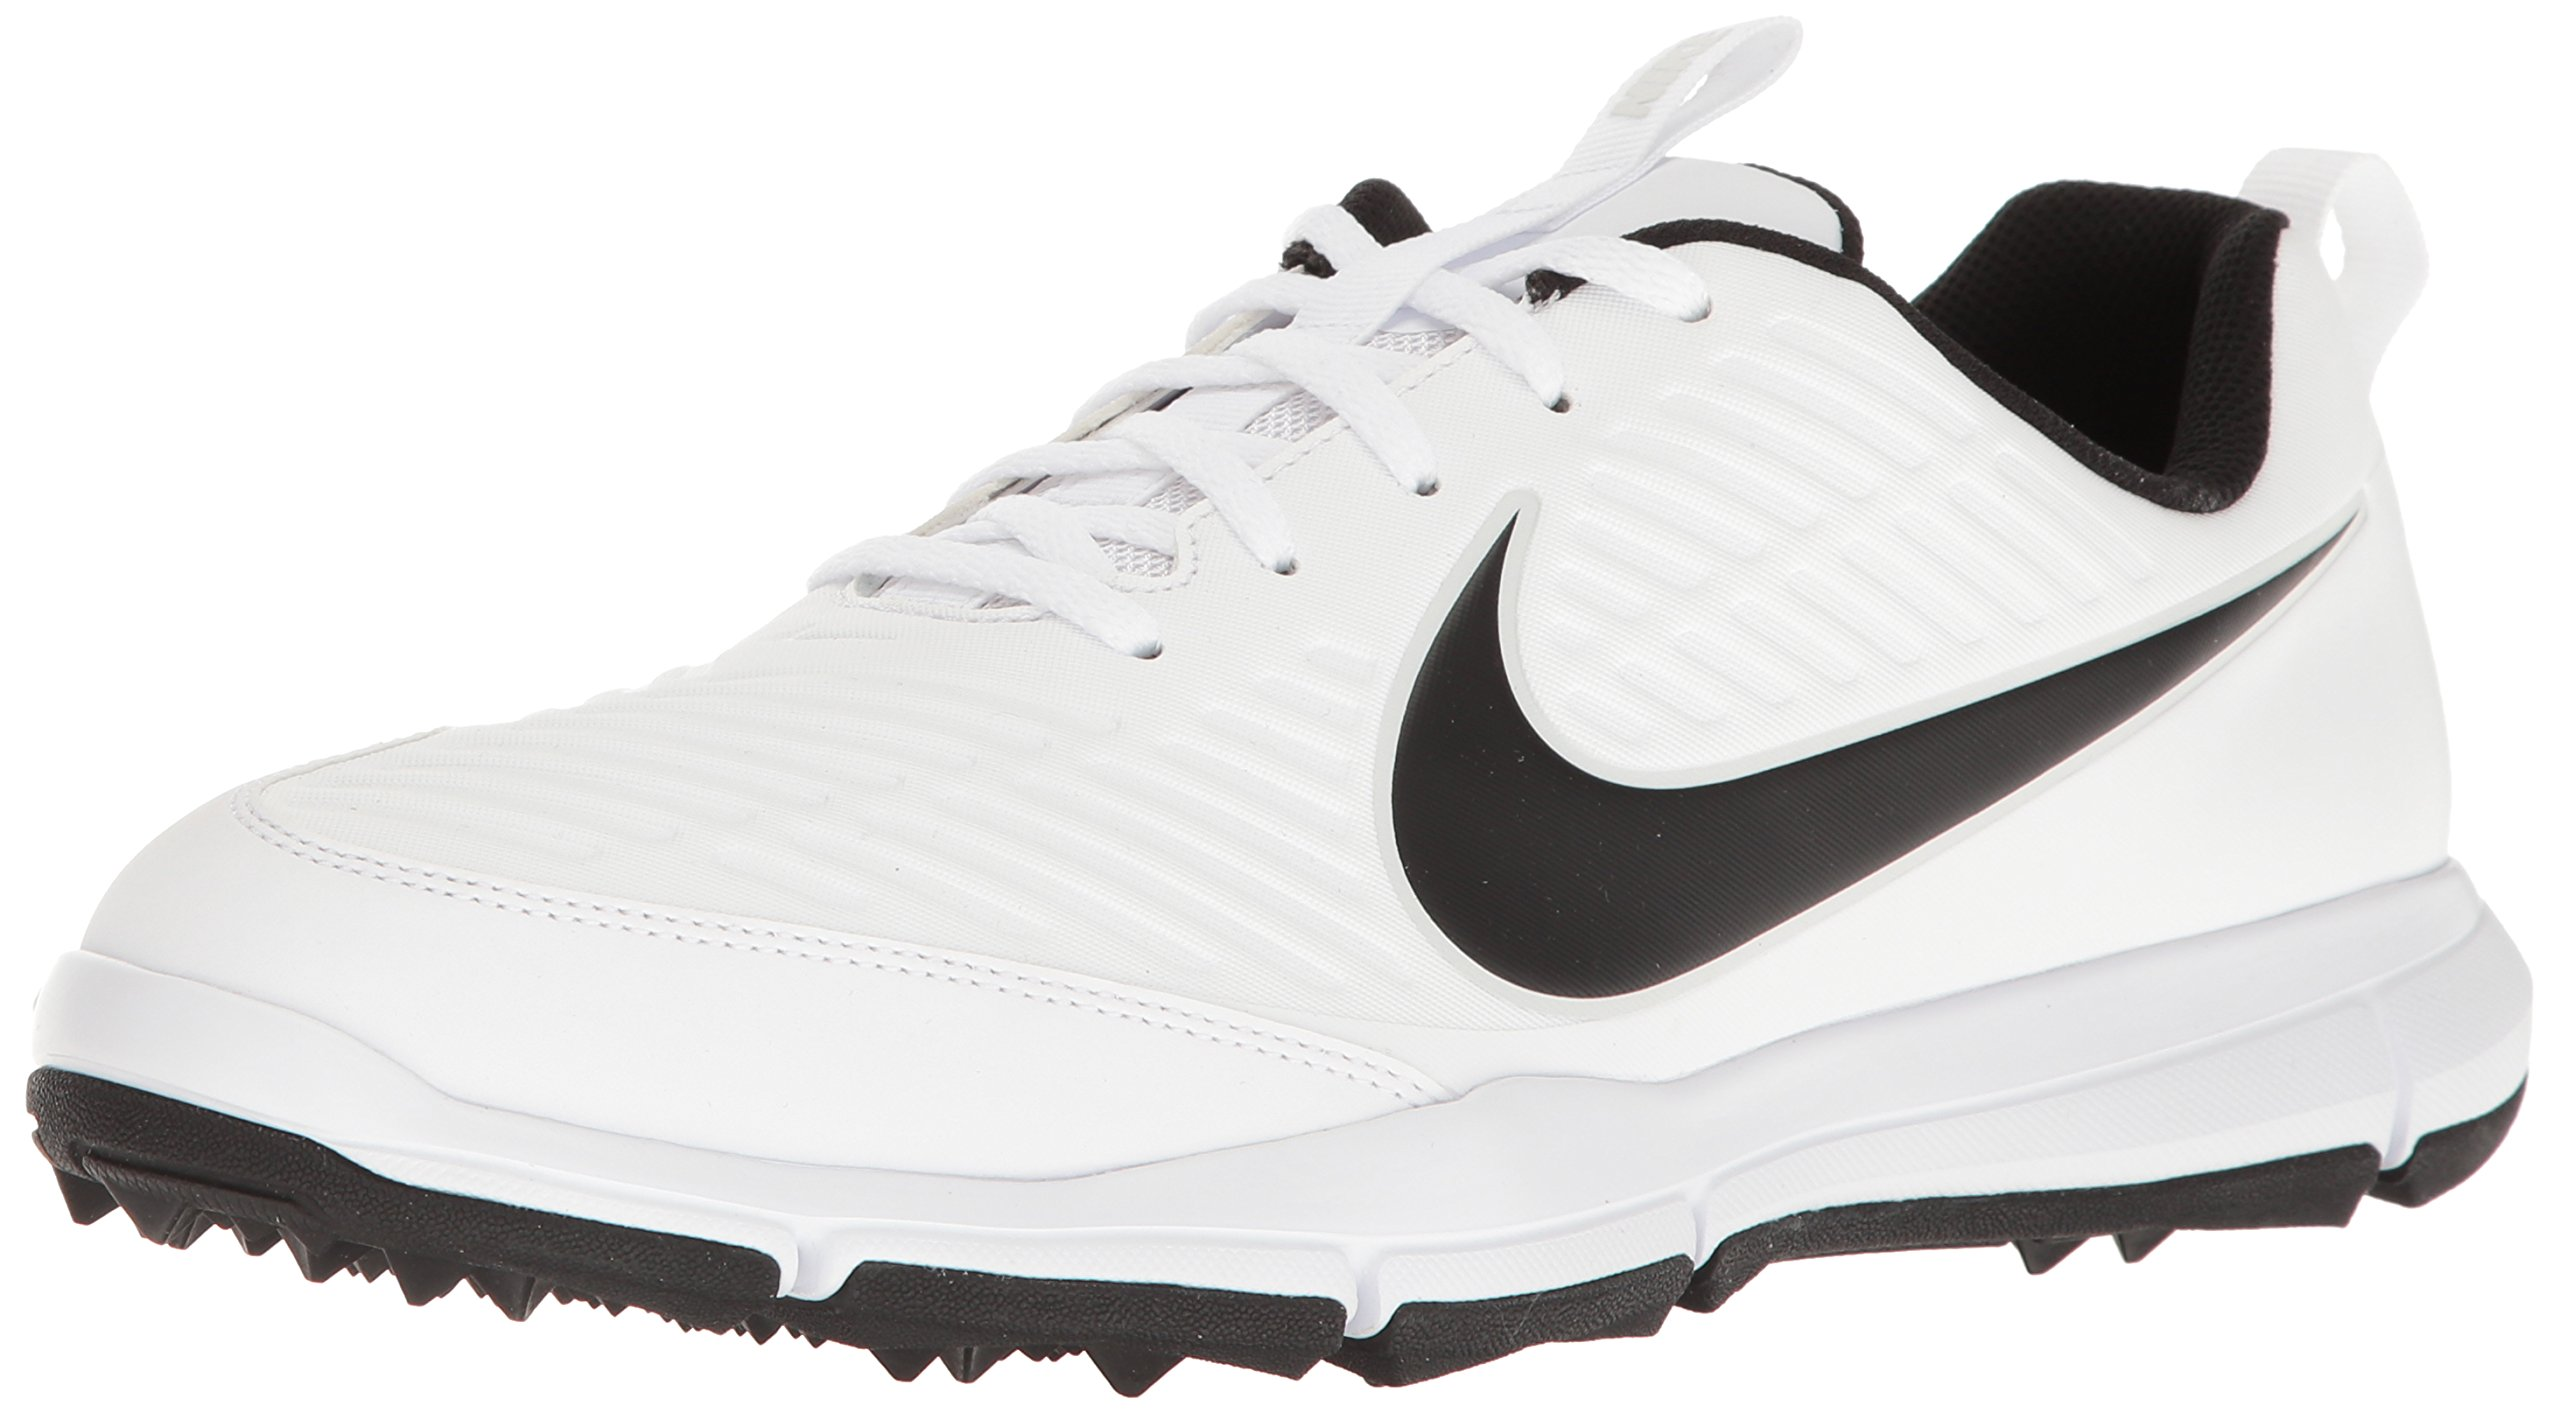 NIKE Men's Explorer 2 Golf Shoe, White/Black, 11 M US by NIKE